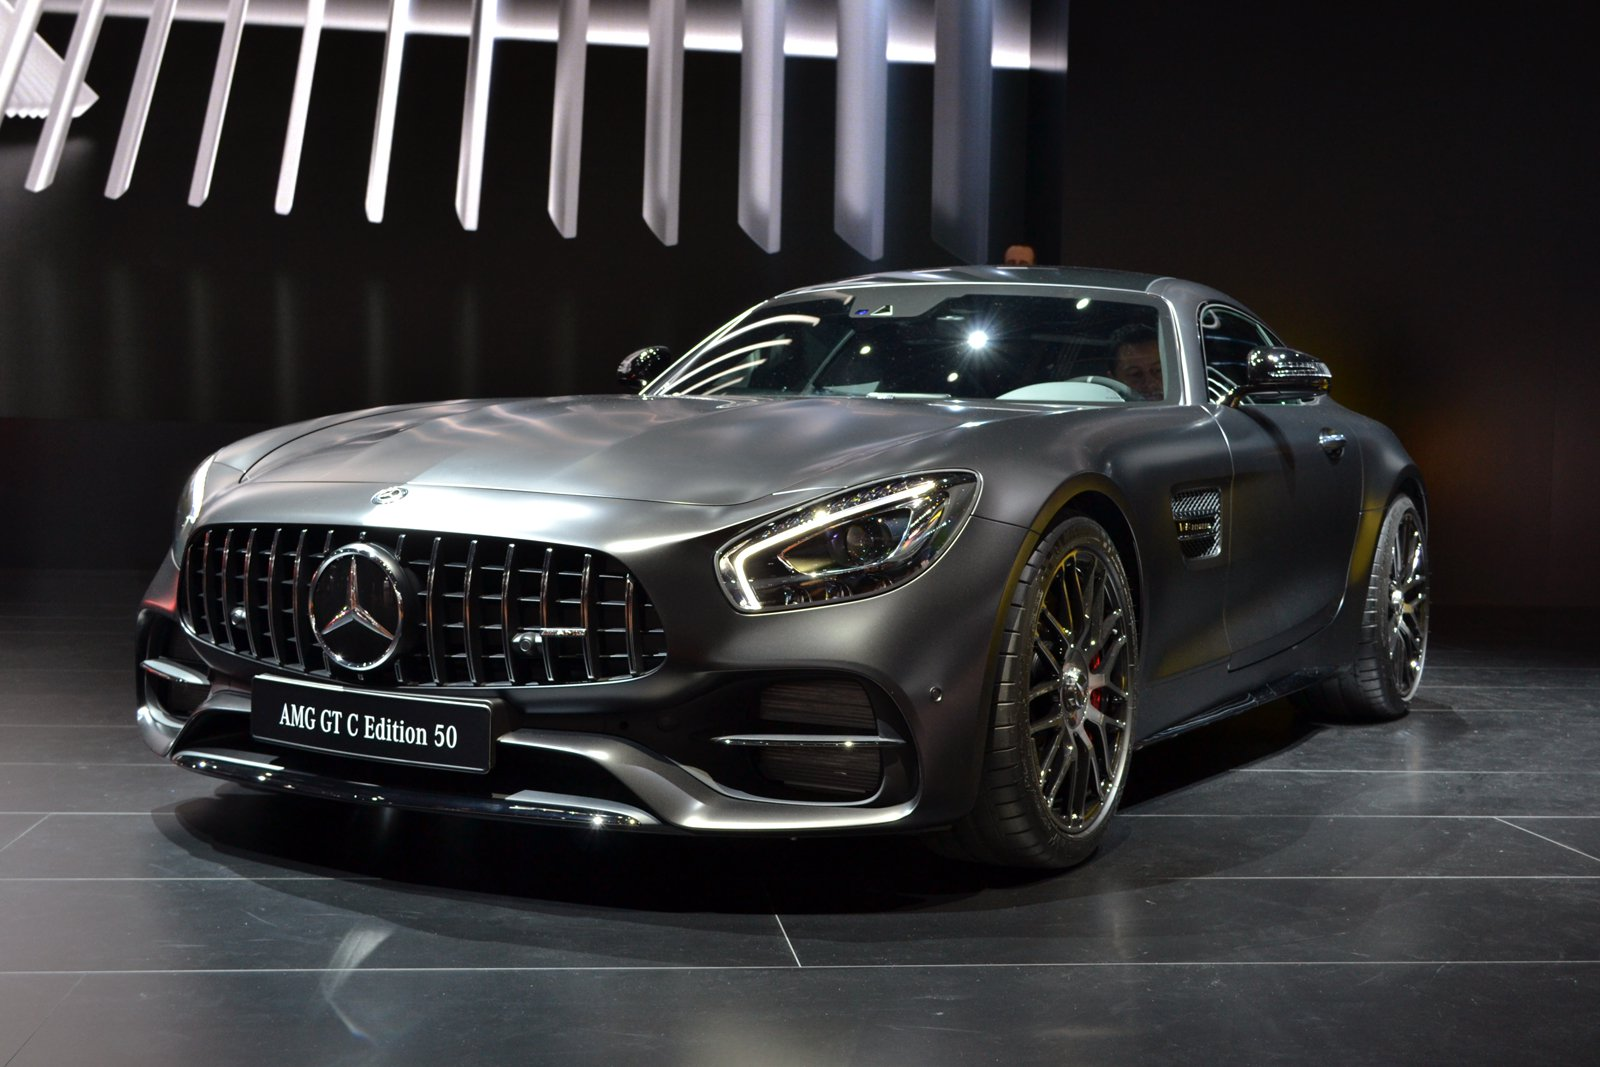 Entire 2018 Mercedes-AMG GT Lineup Refreshed for Some Reason